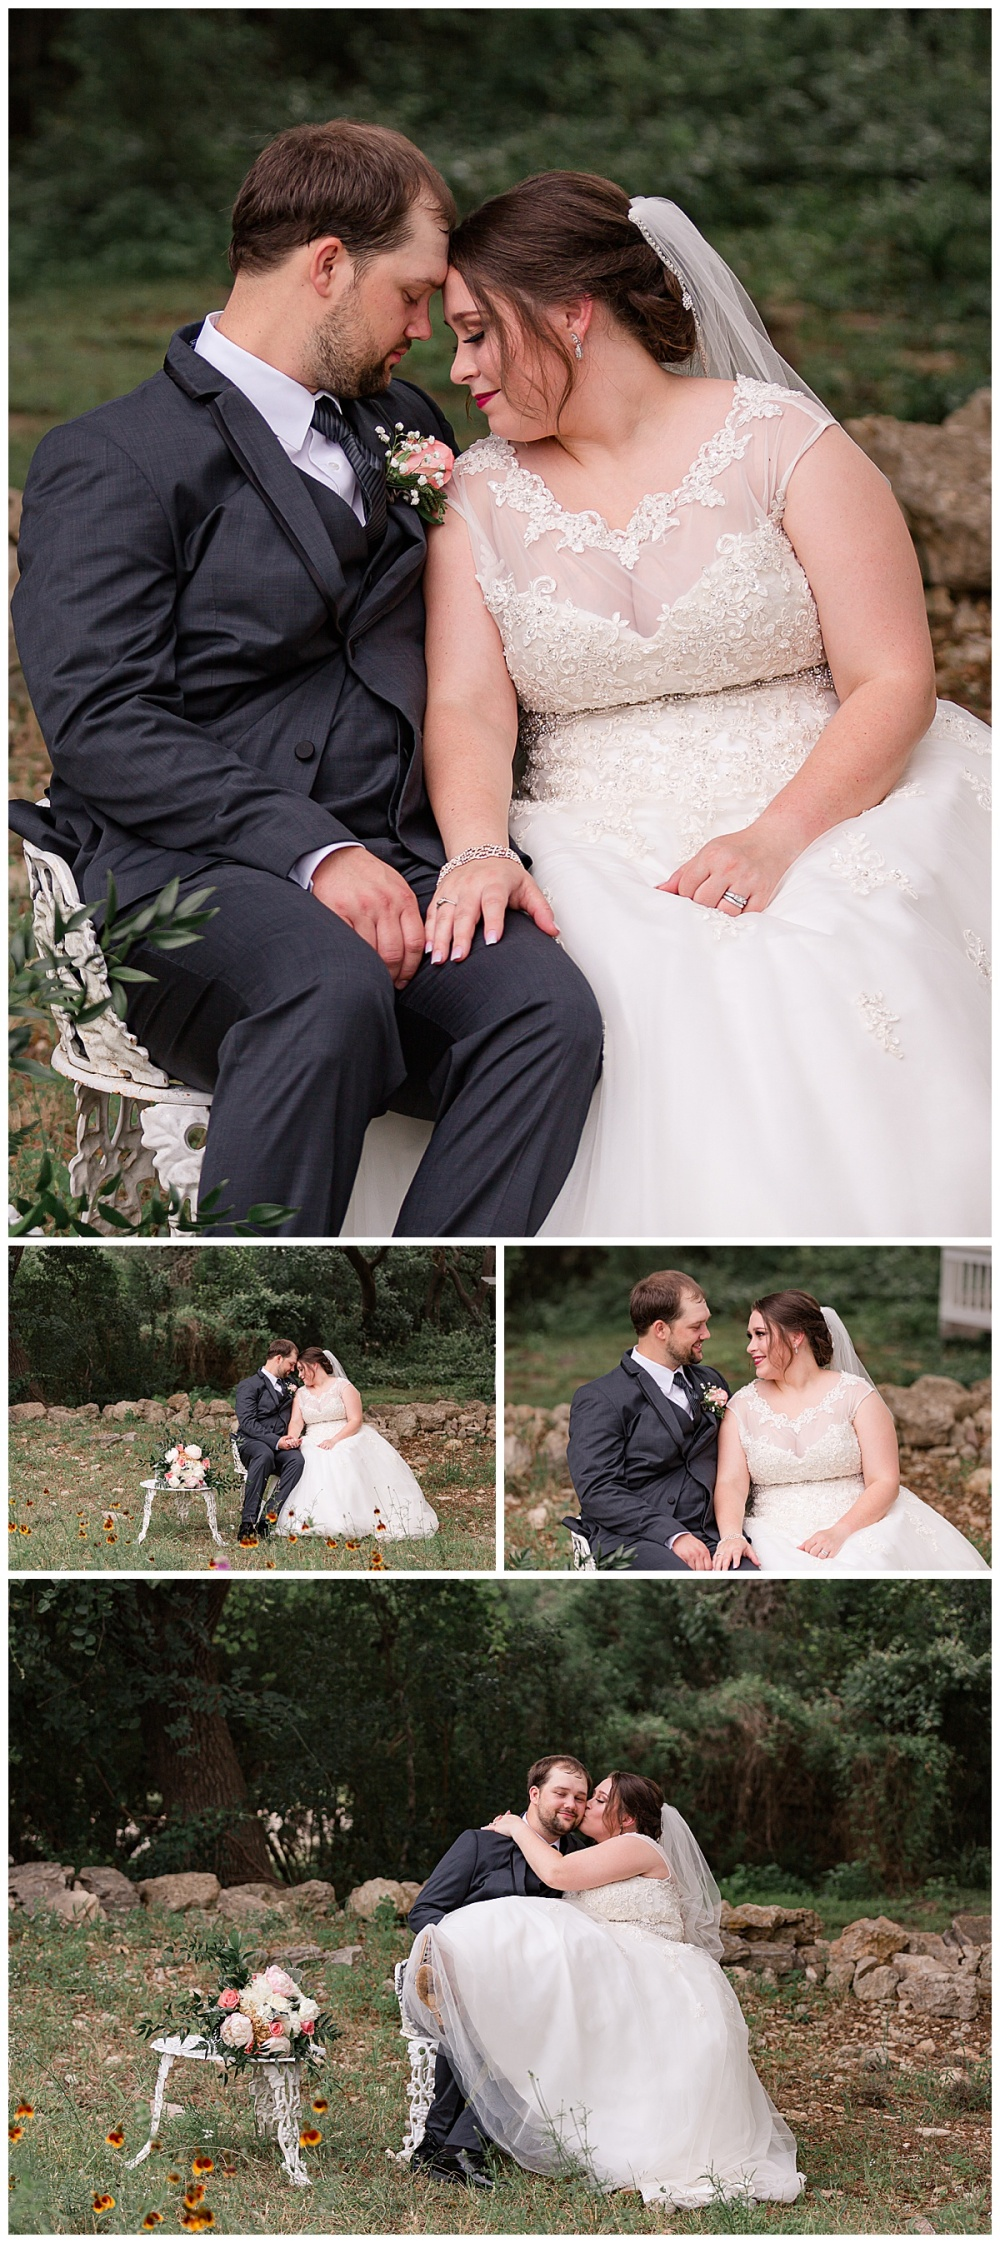 Michael-Tiffany-Wedding-New-Braunfels-Texas-Canyon-Lake-Cabins-and-Cottages-Carly-Barton-Photography_0040.jpg